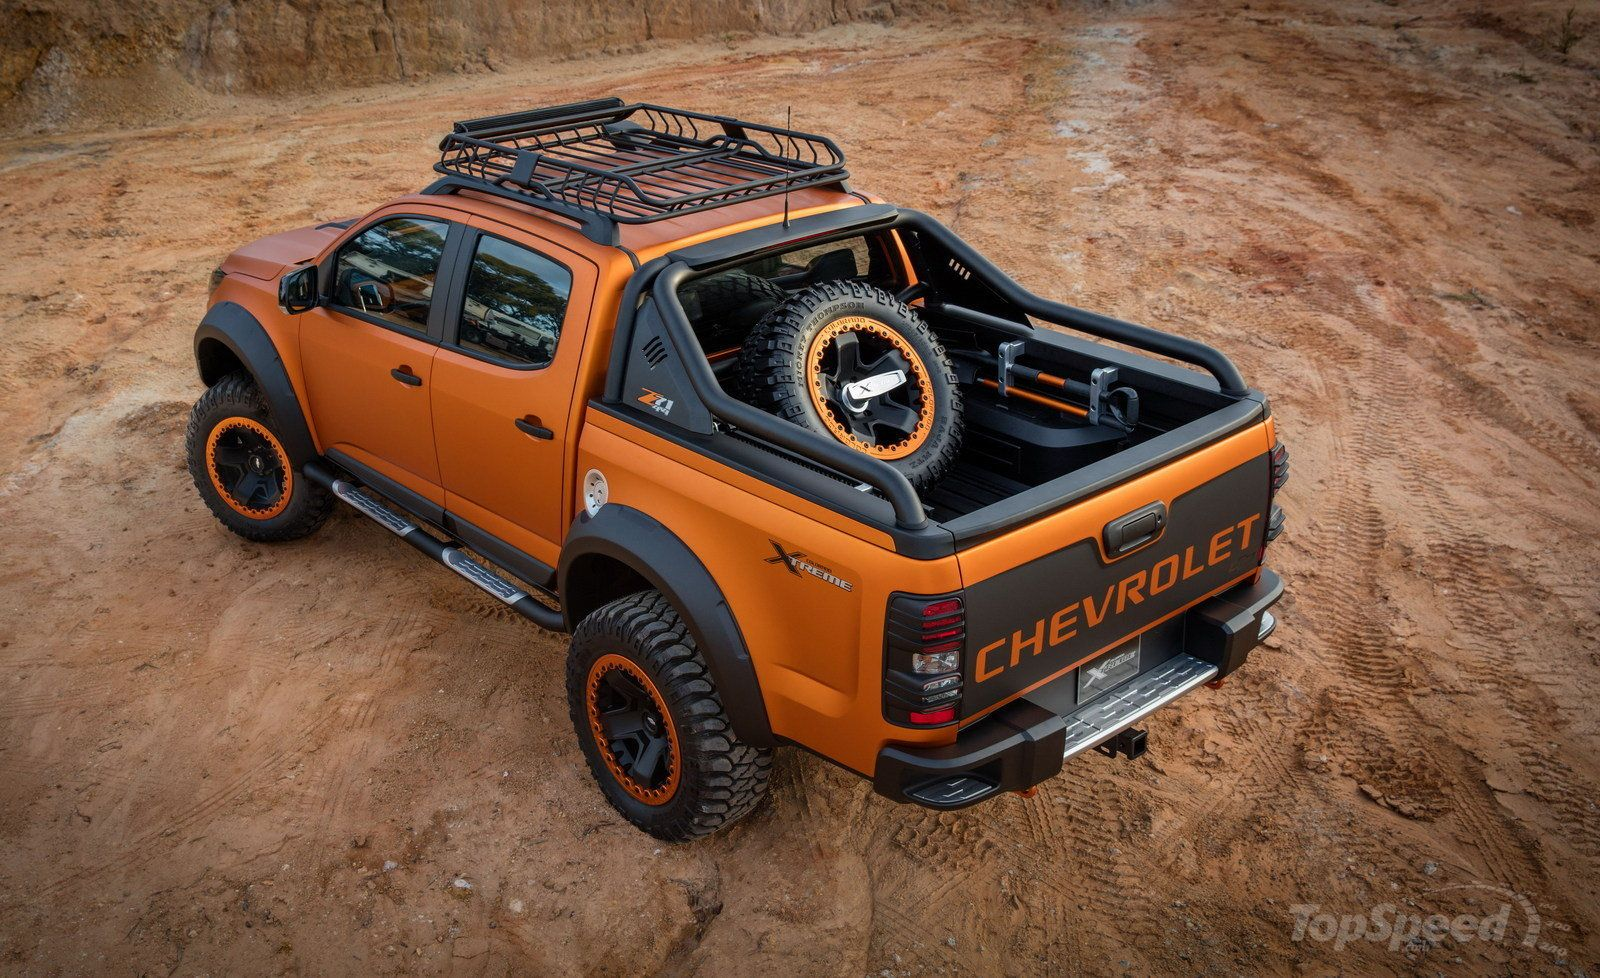 2016 chevy colorado xtreme with frequent floods in houston i d install snorkels